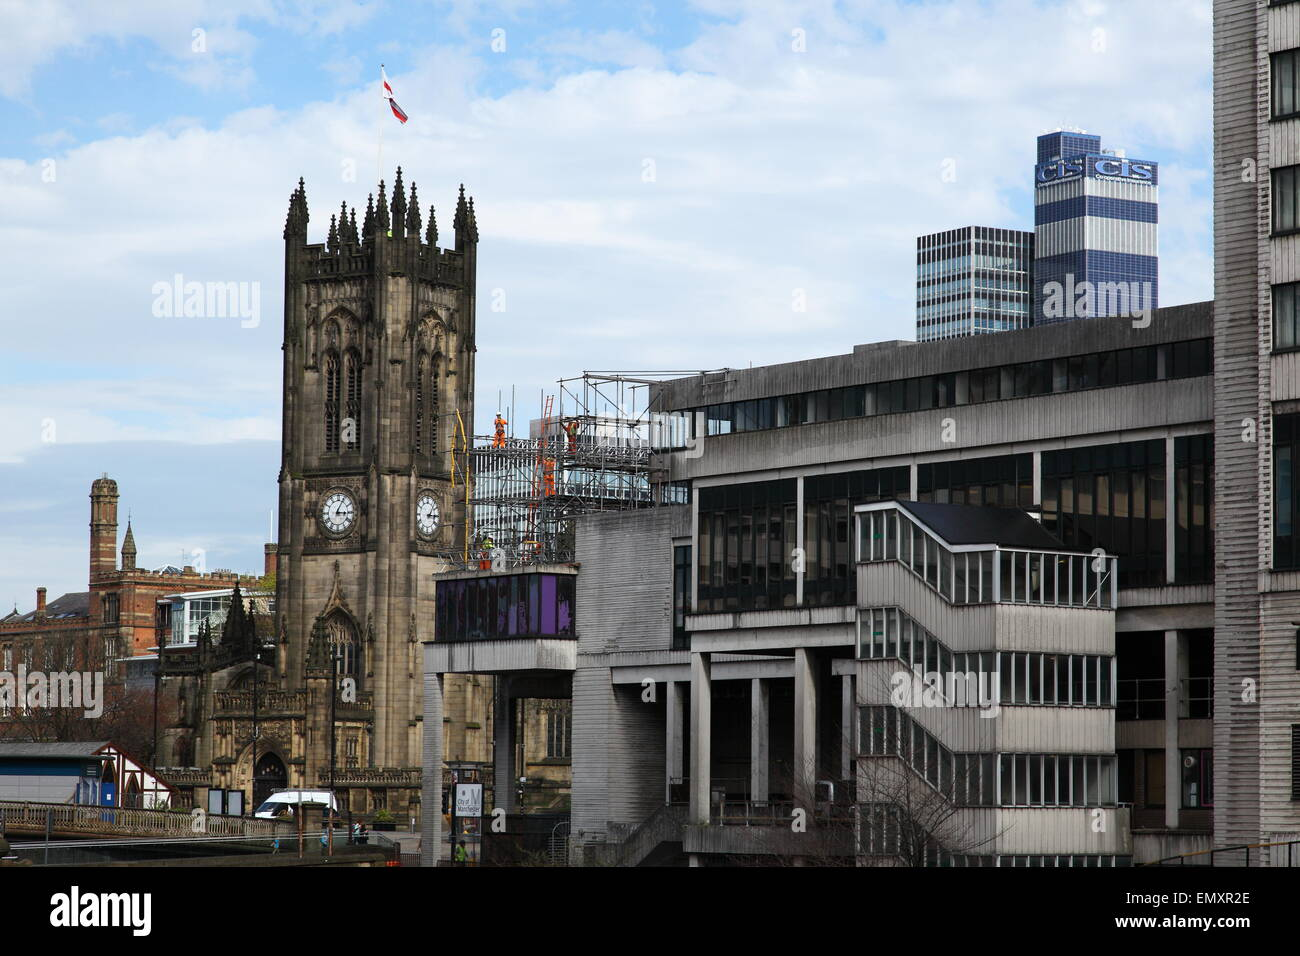 Workers dismantling scaffolding in the shadow of the cathedral in Manchester city centre, England UK - Stock Image